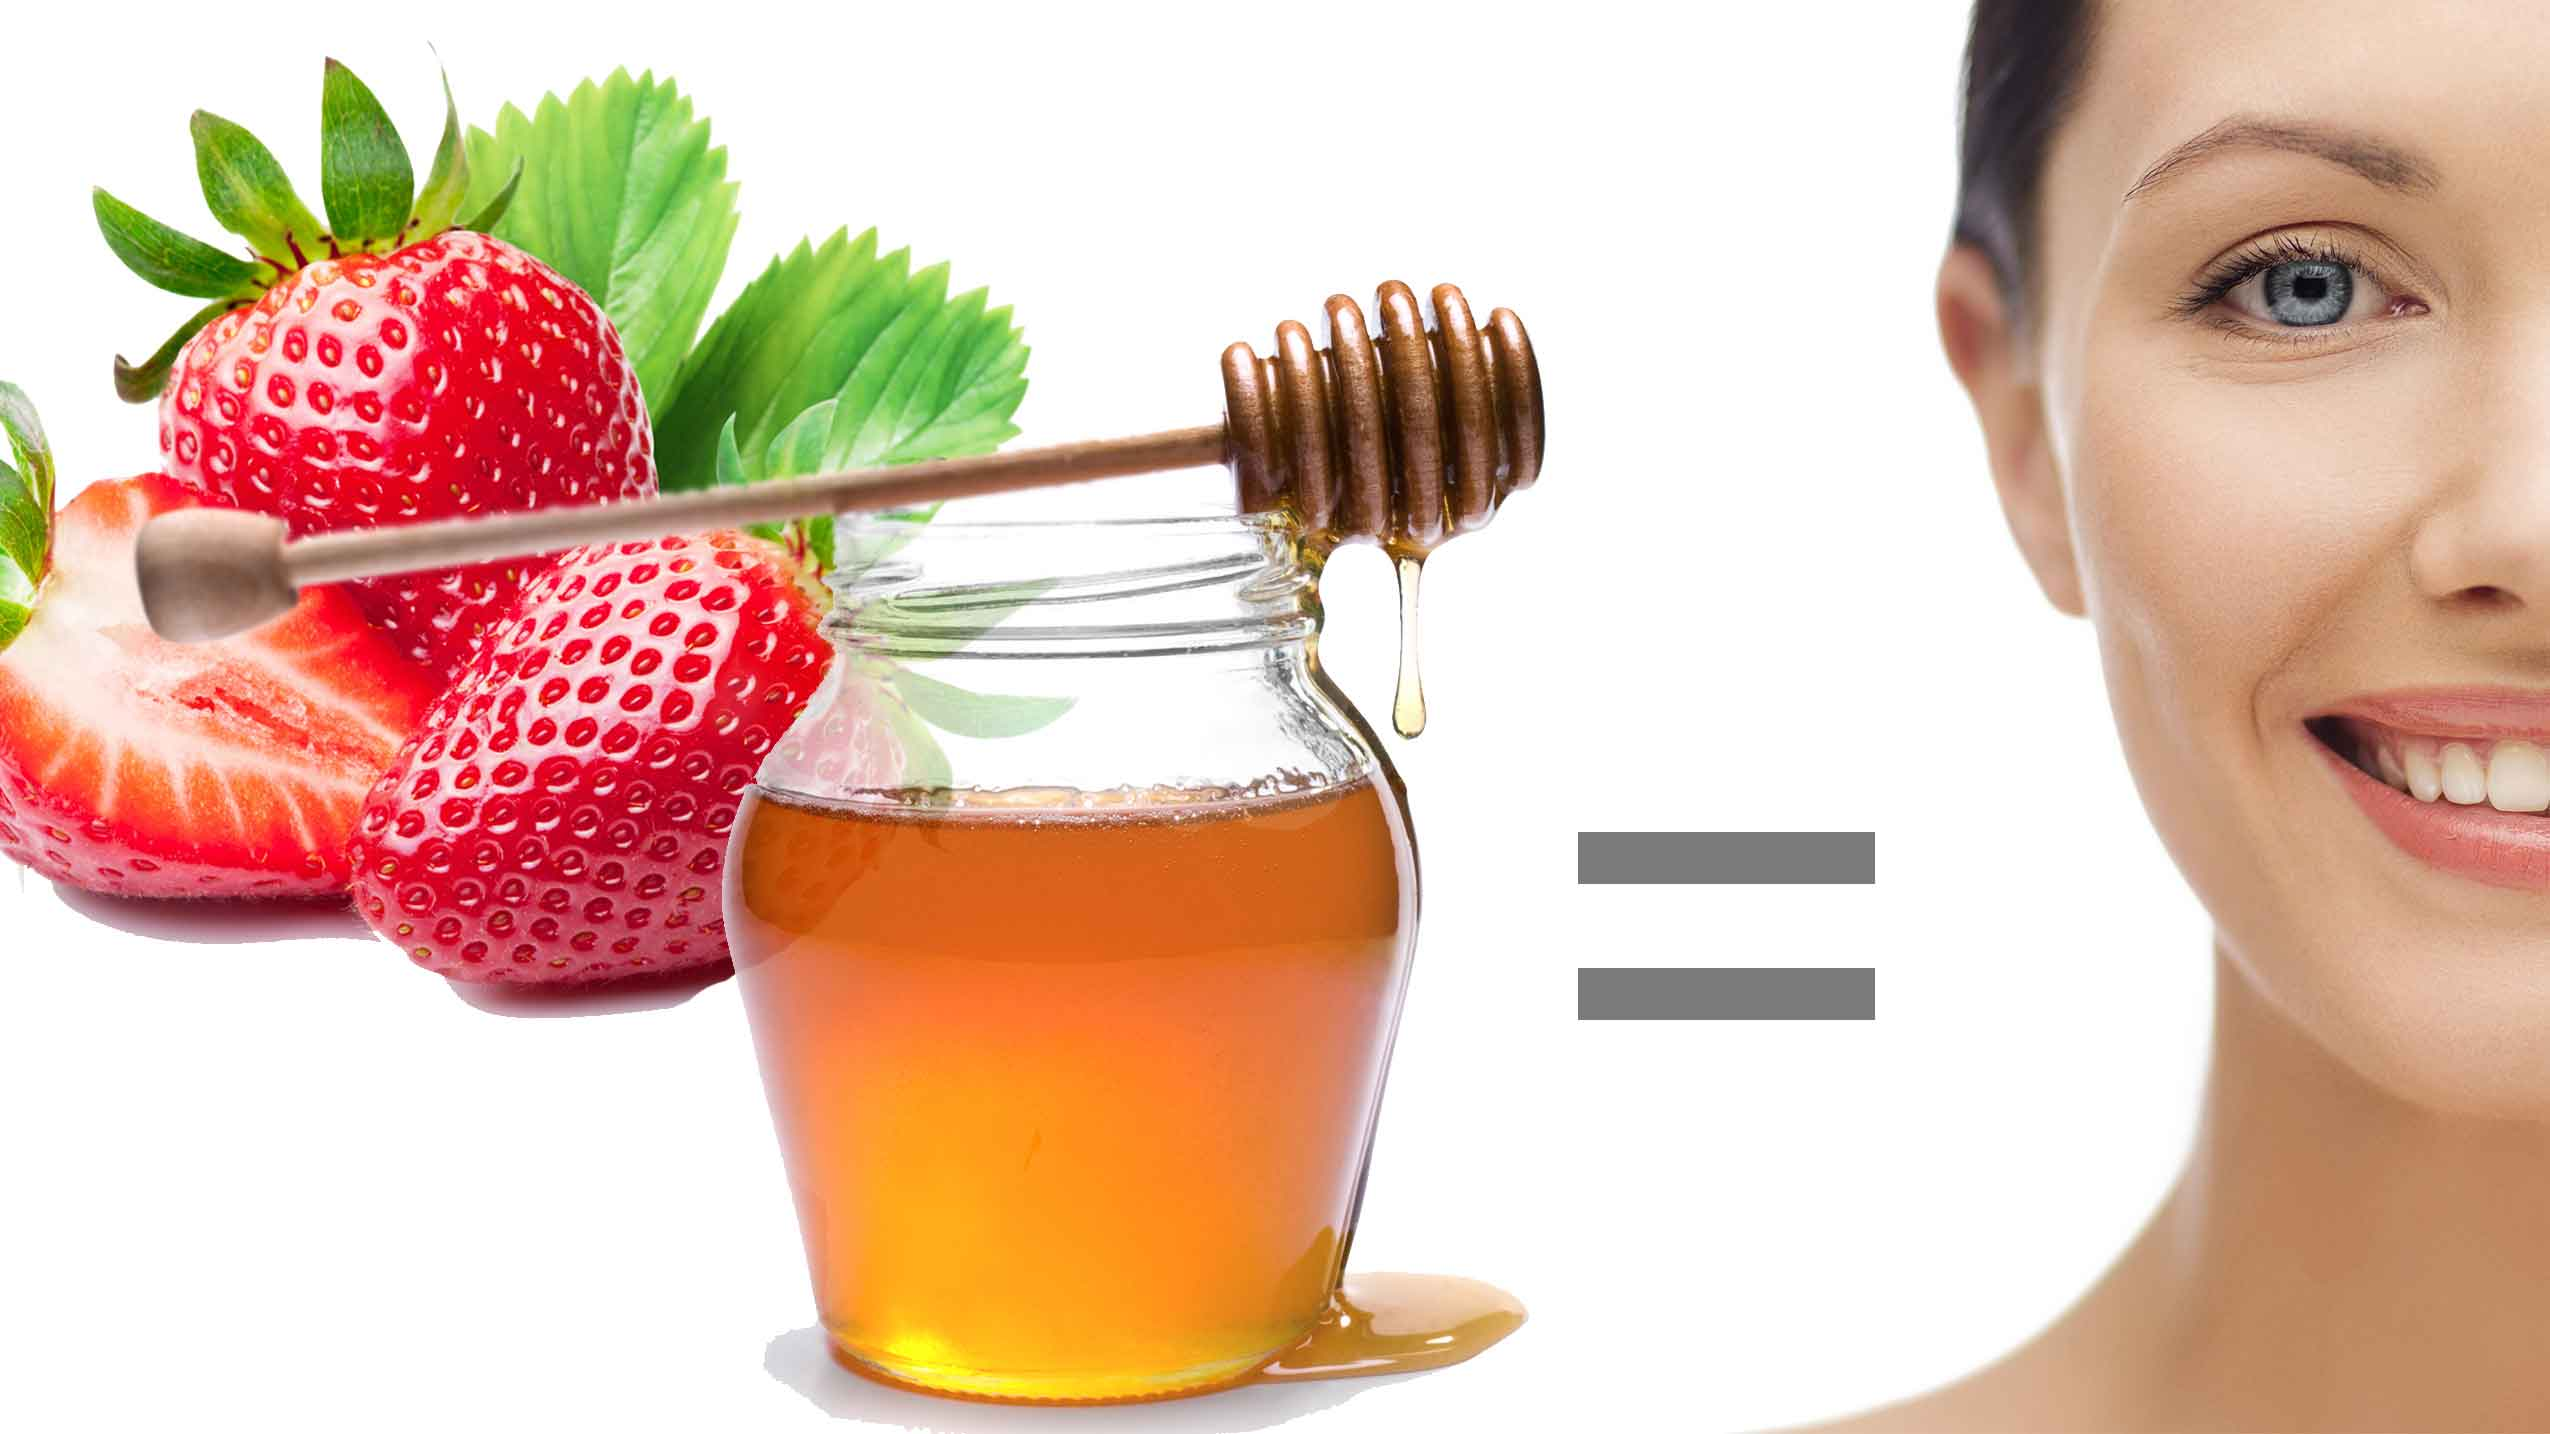 Strawberries and Honey to treat pimples